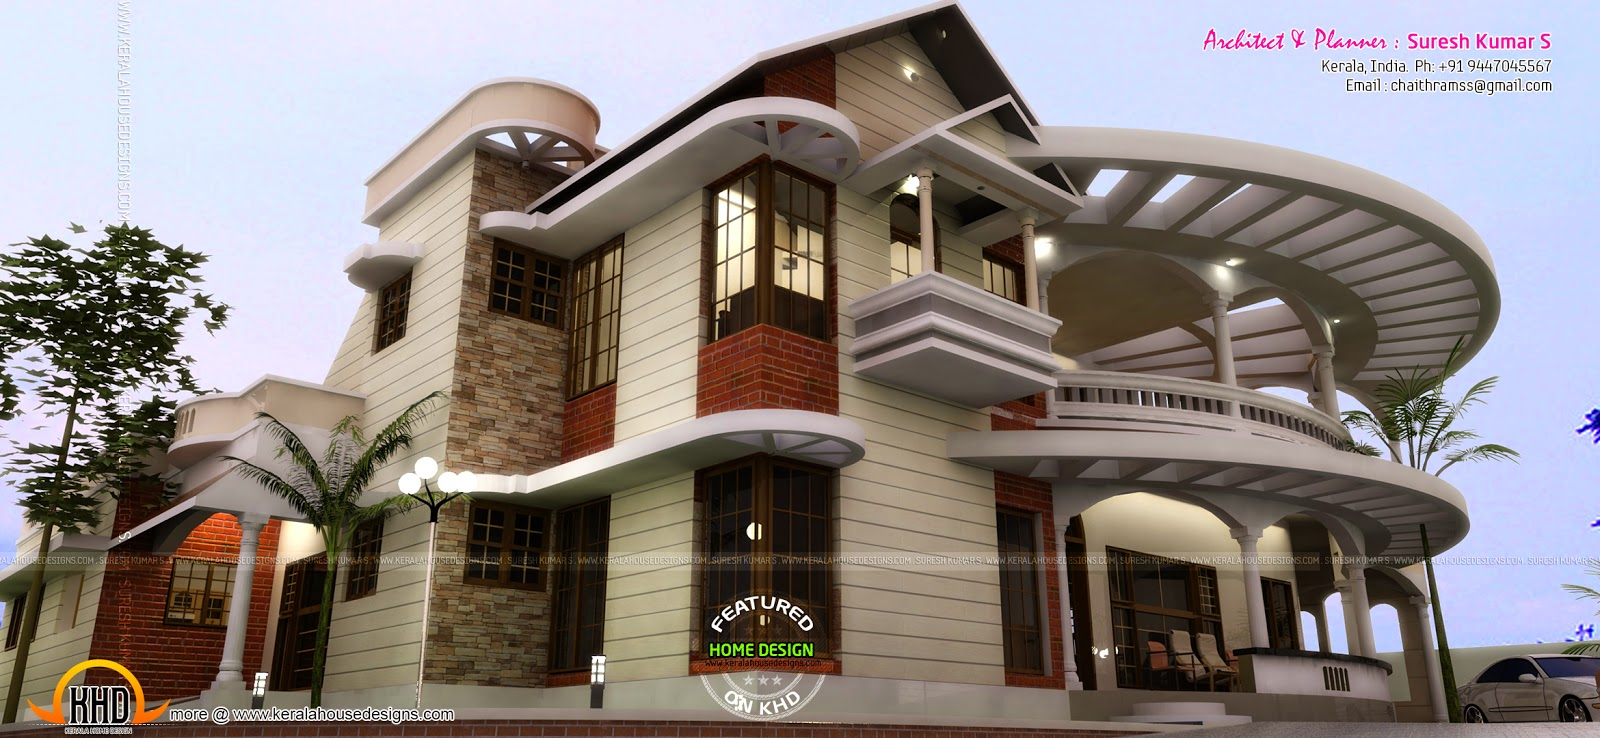 Great looking house design by Suresh Kumar - Kerala home ...